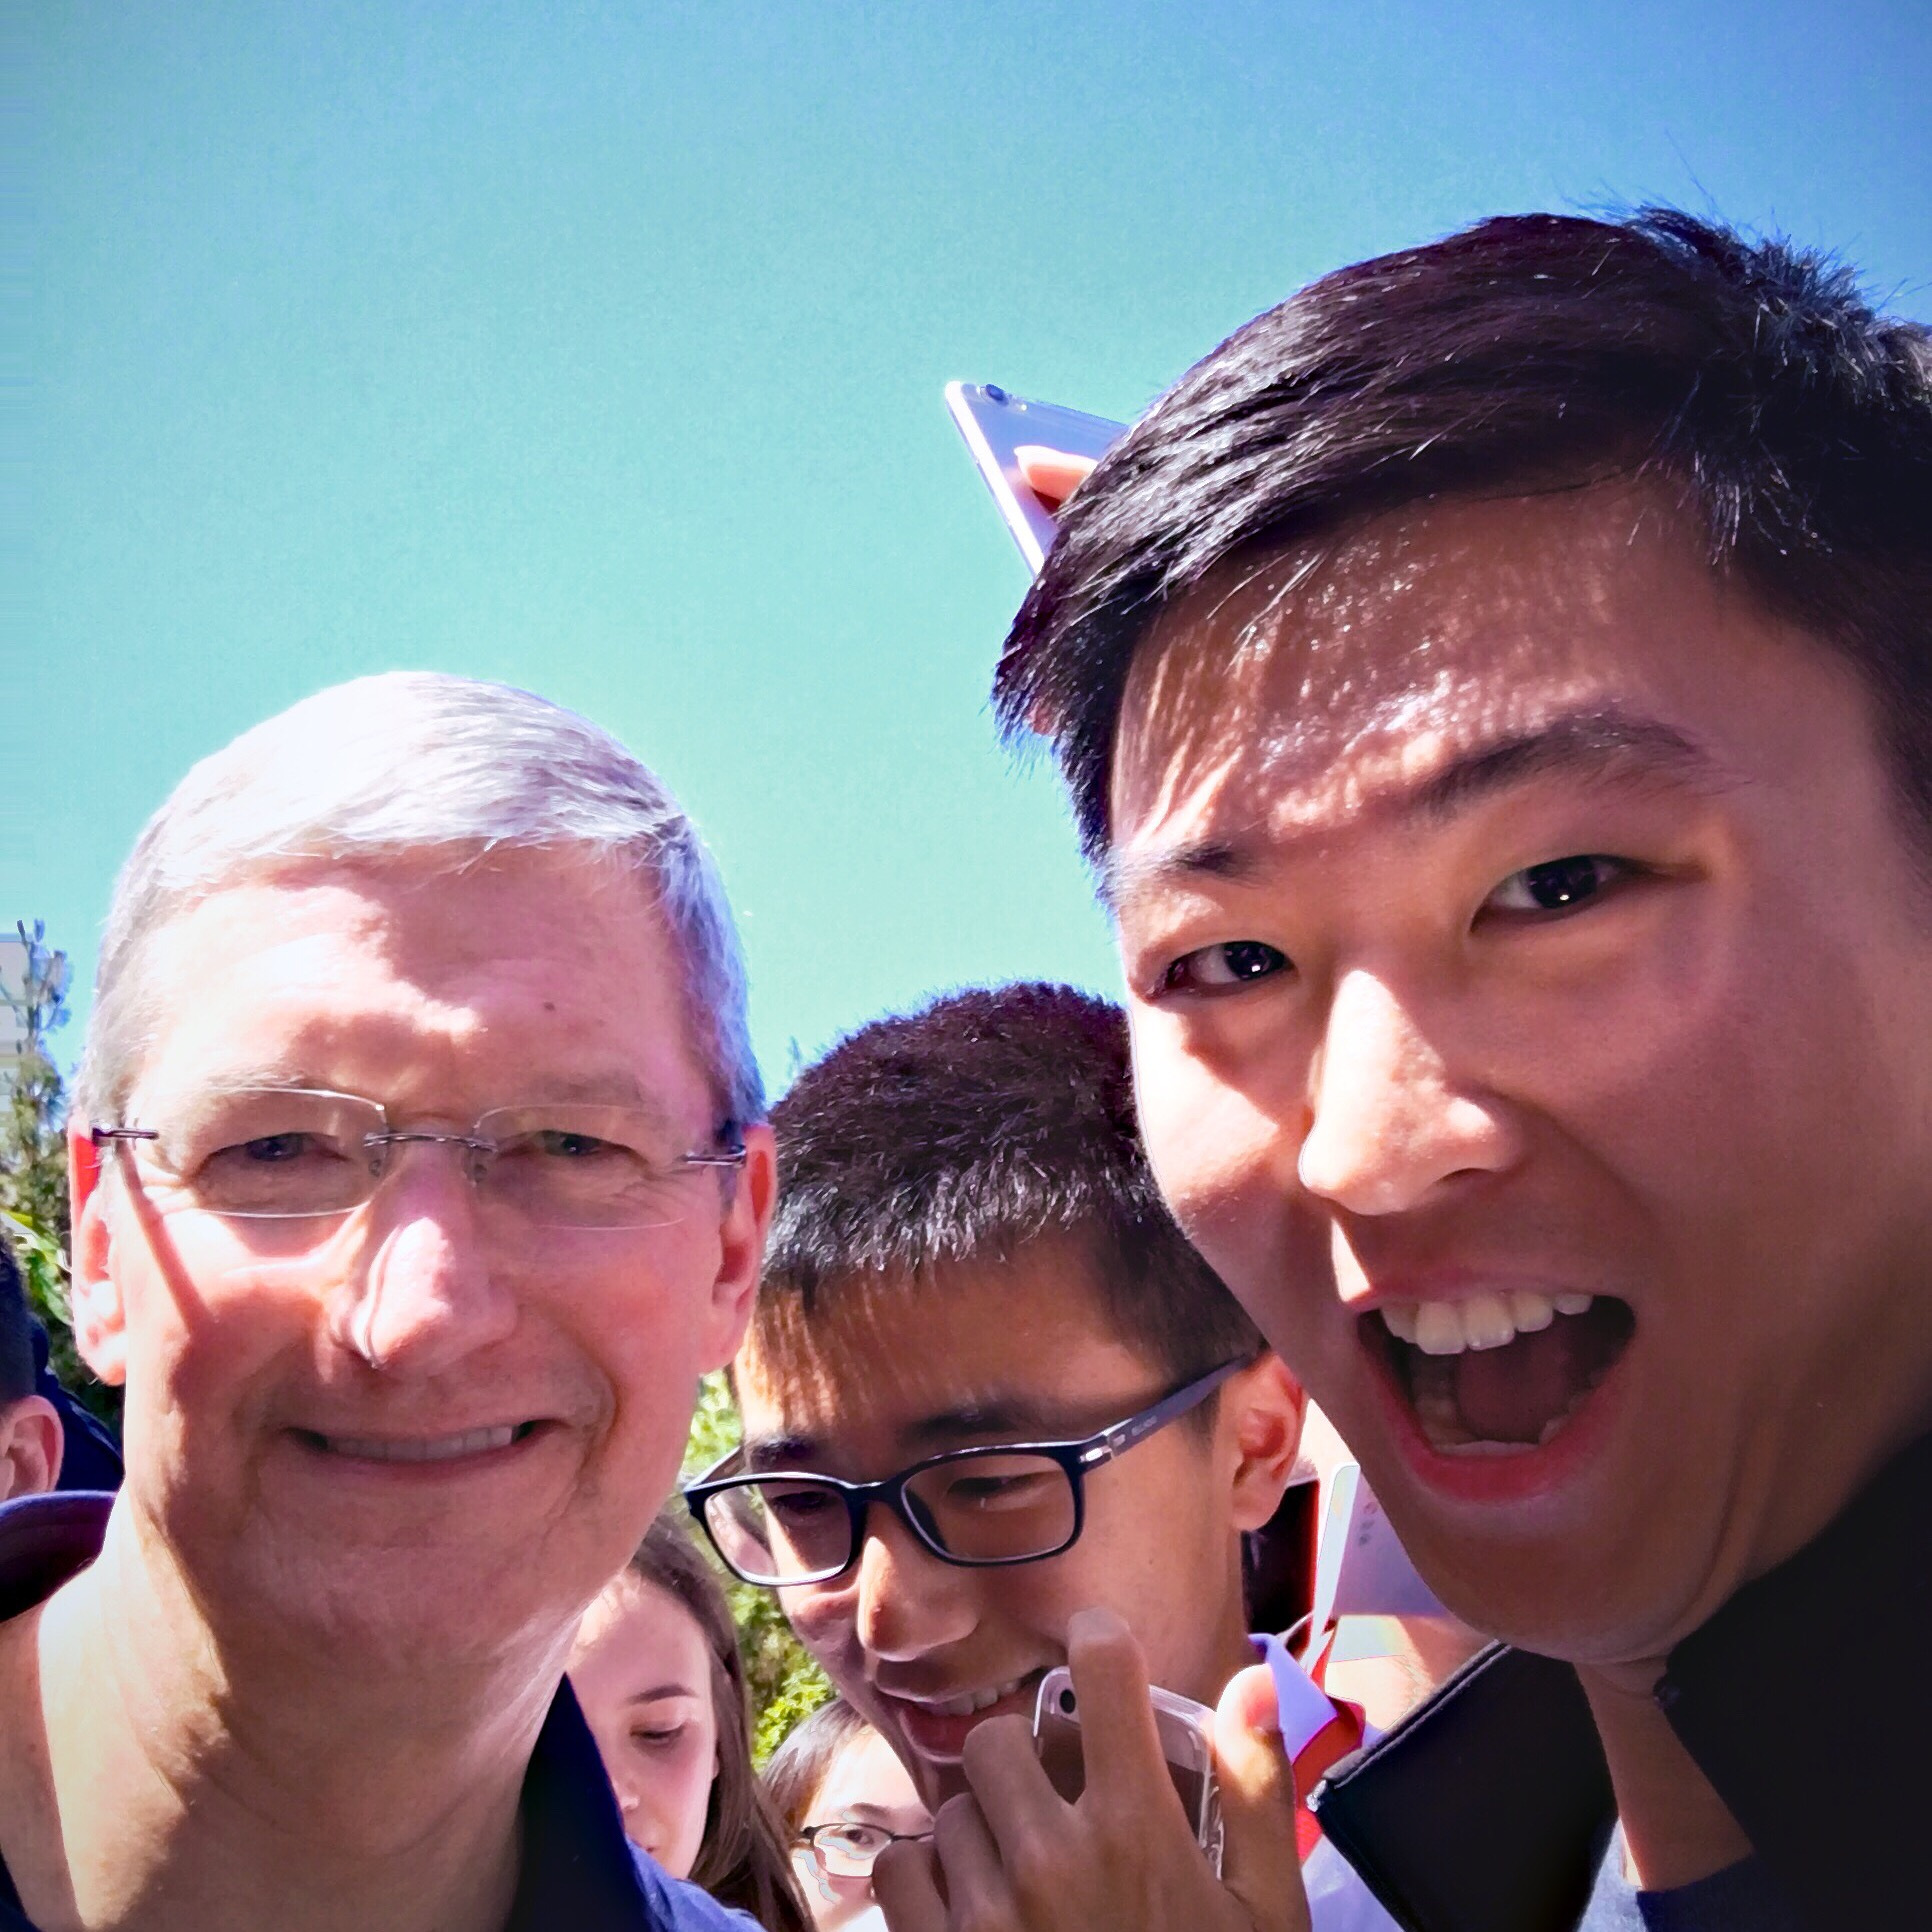 Selfie with Tim Cook